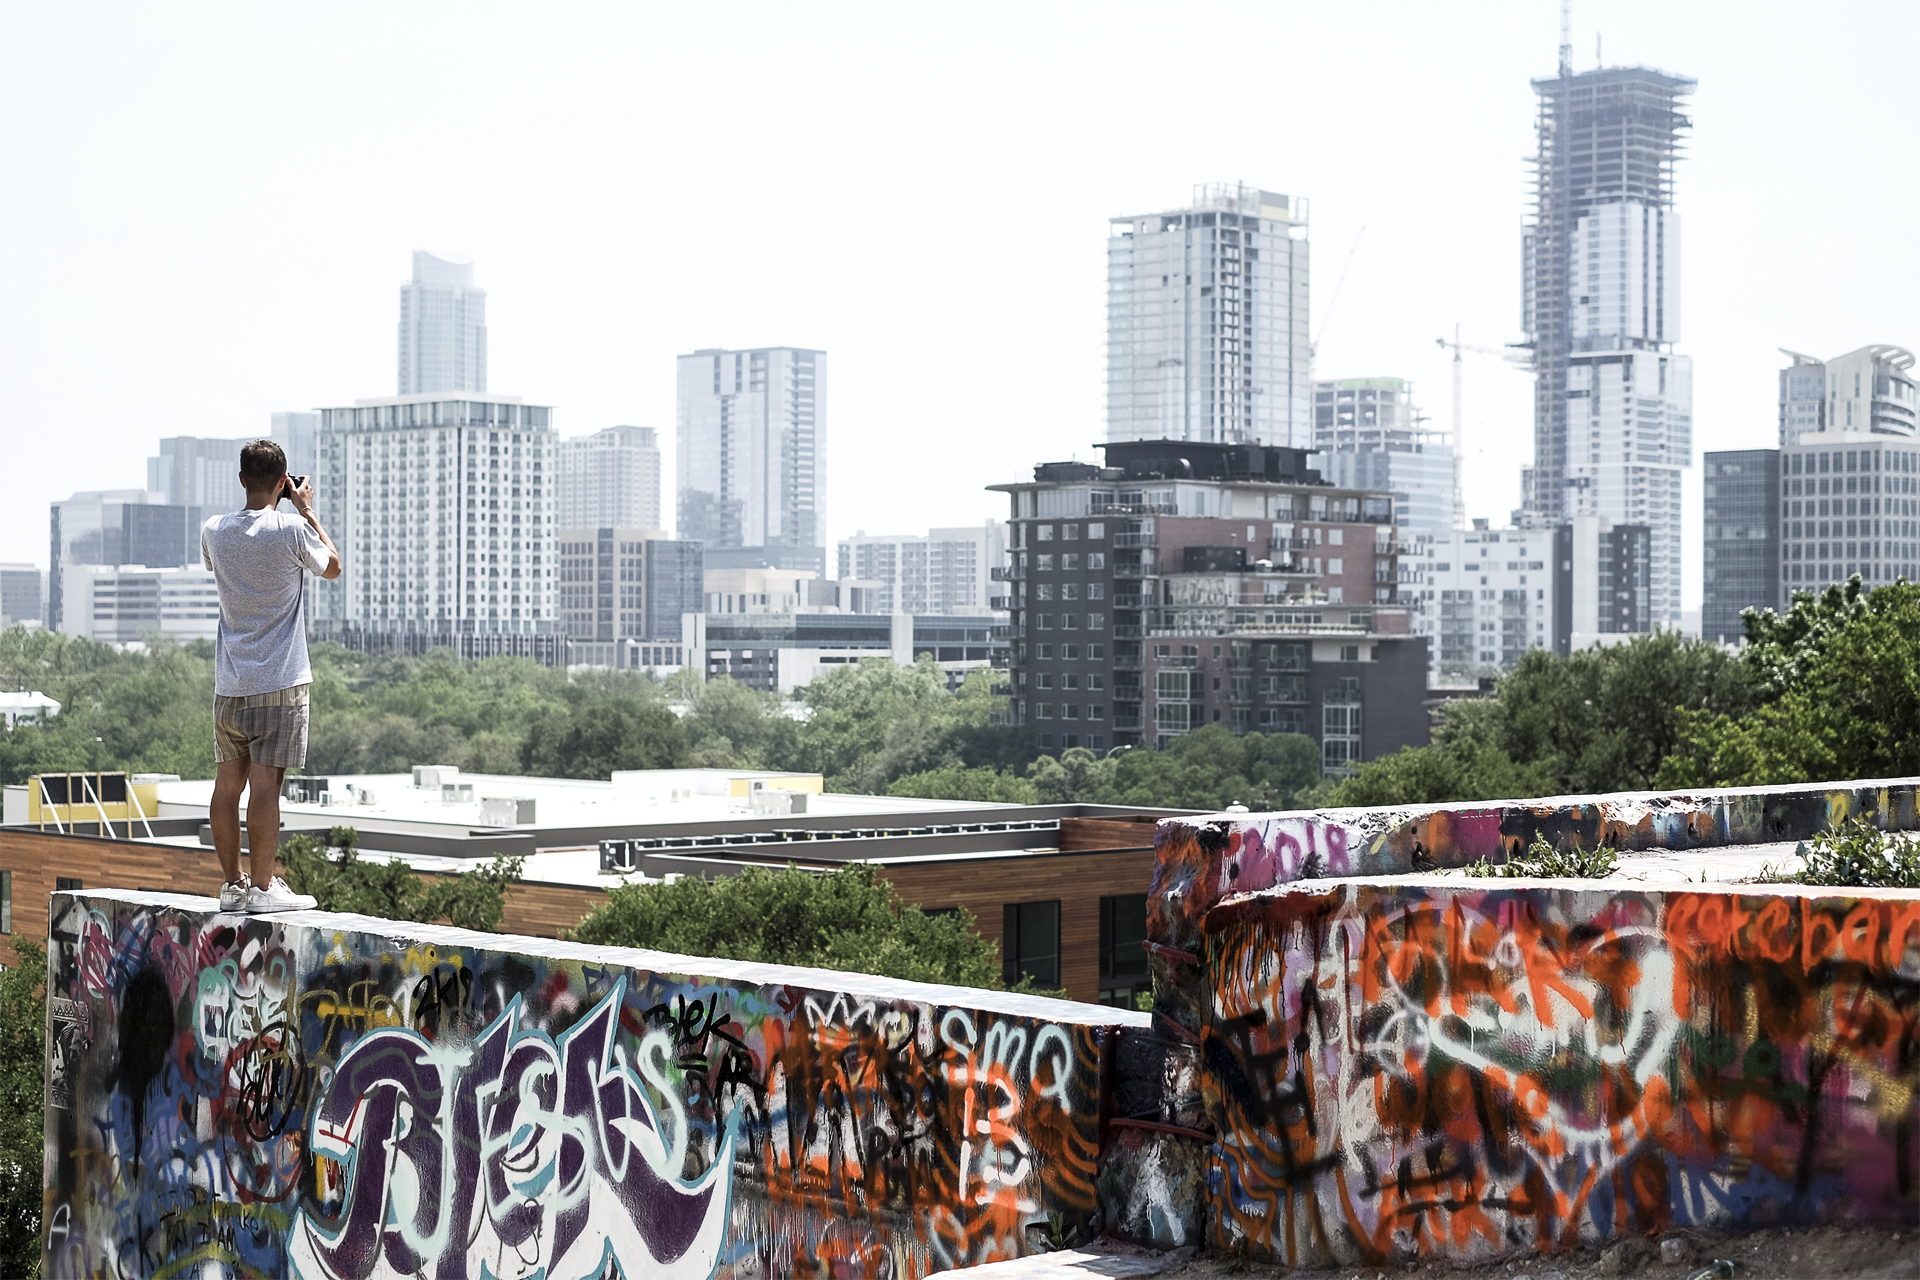 view of Austin with buildings and street art walls